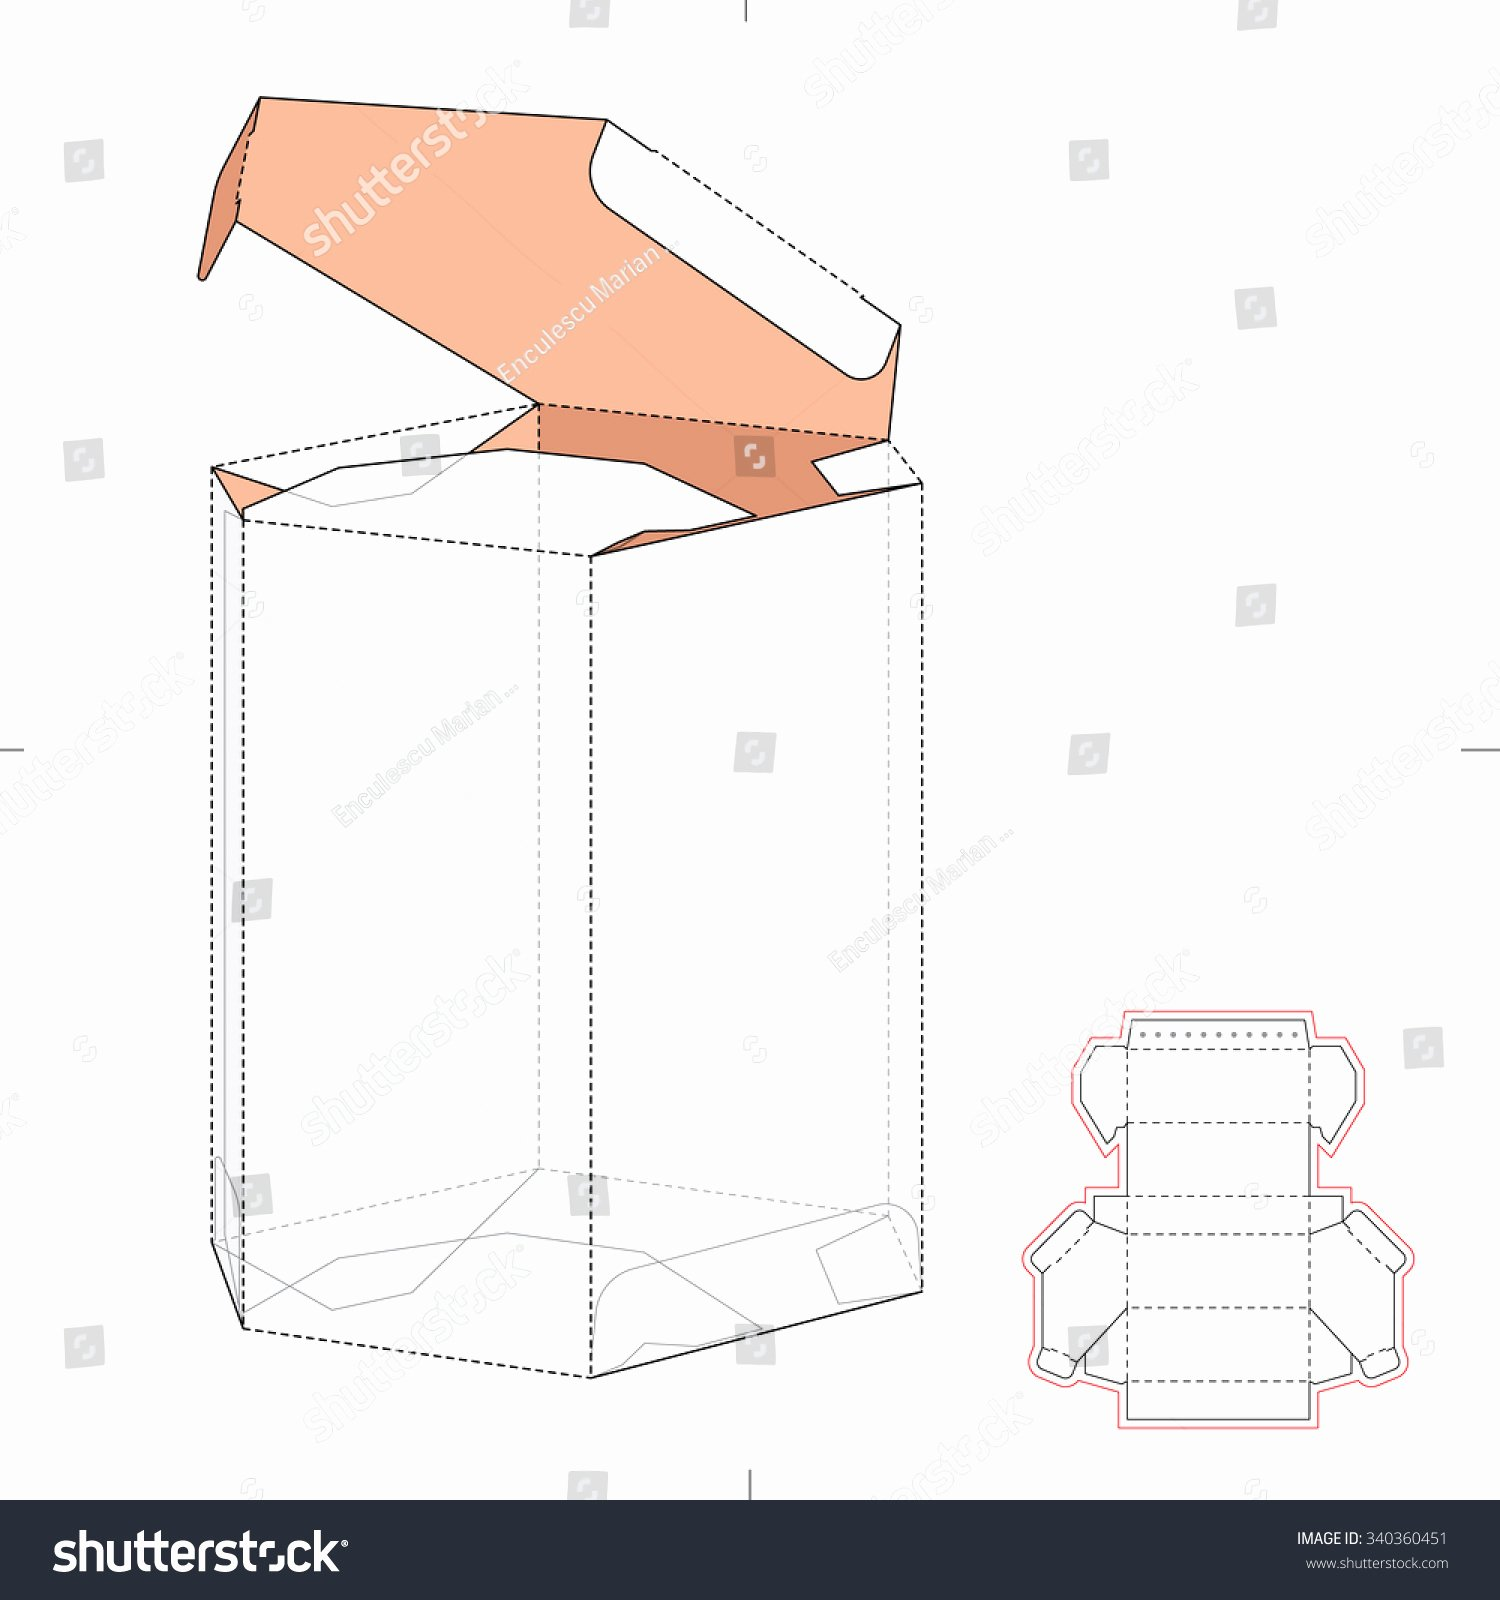 Box Die Cut Template Lovely Diamond Shaped Box Die Cut Template Stock Vector Shutterstock